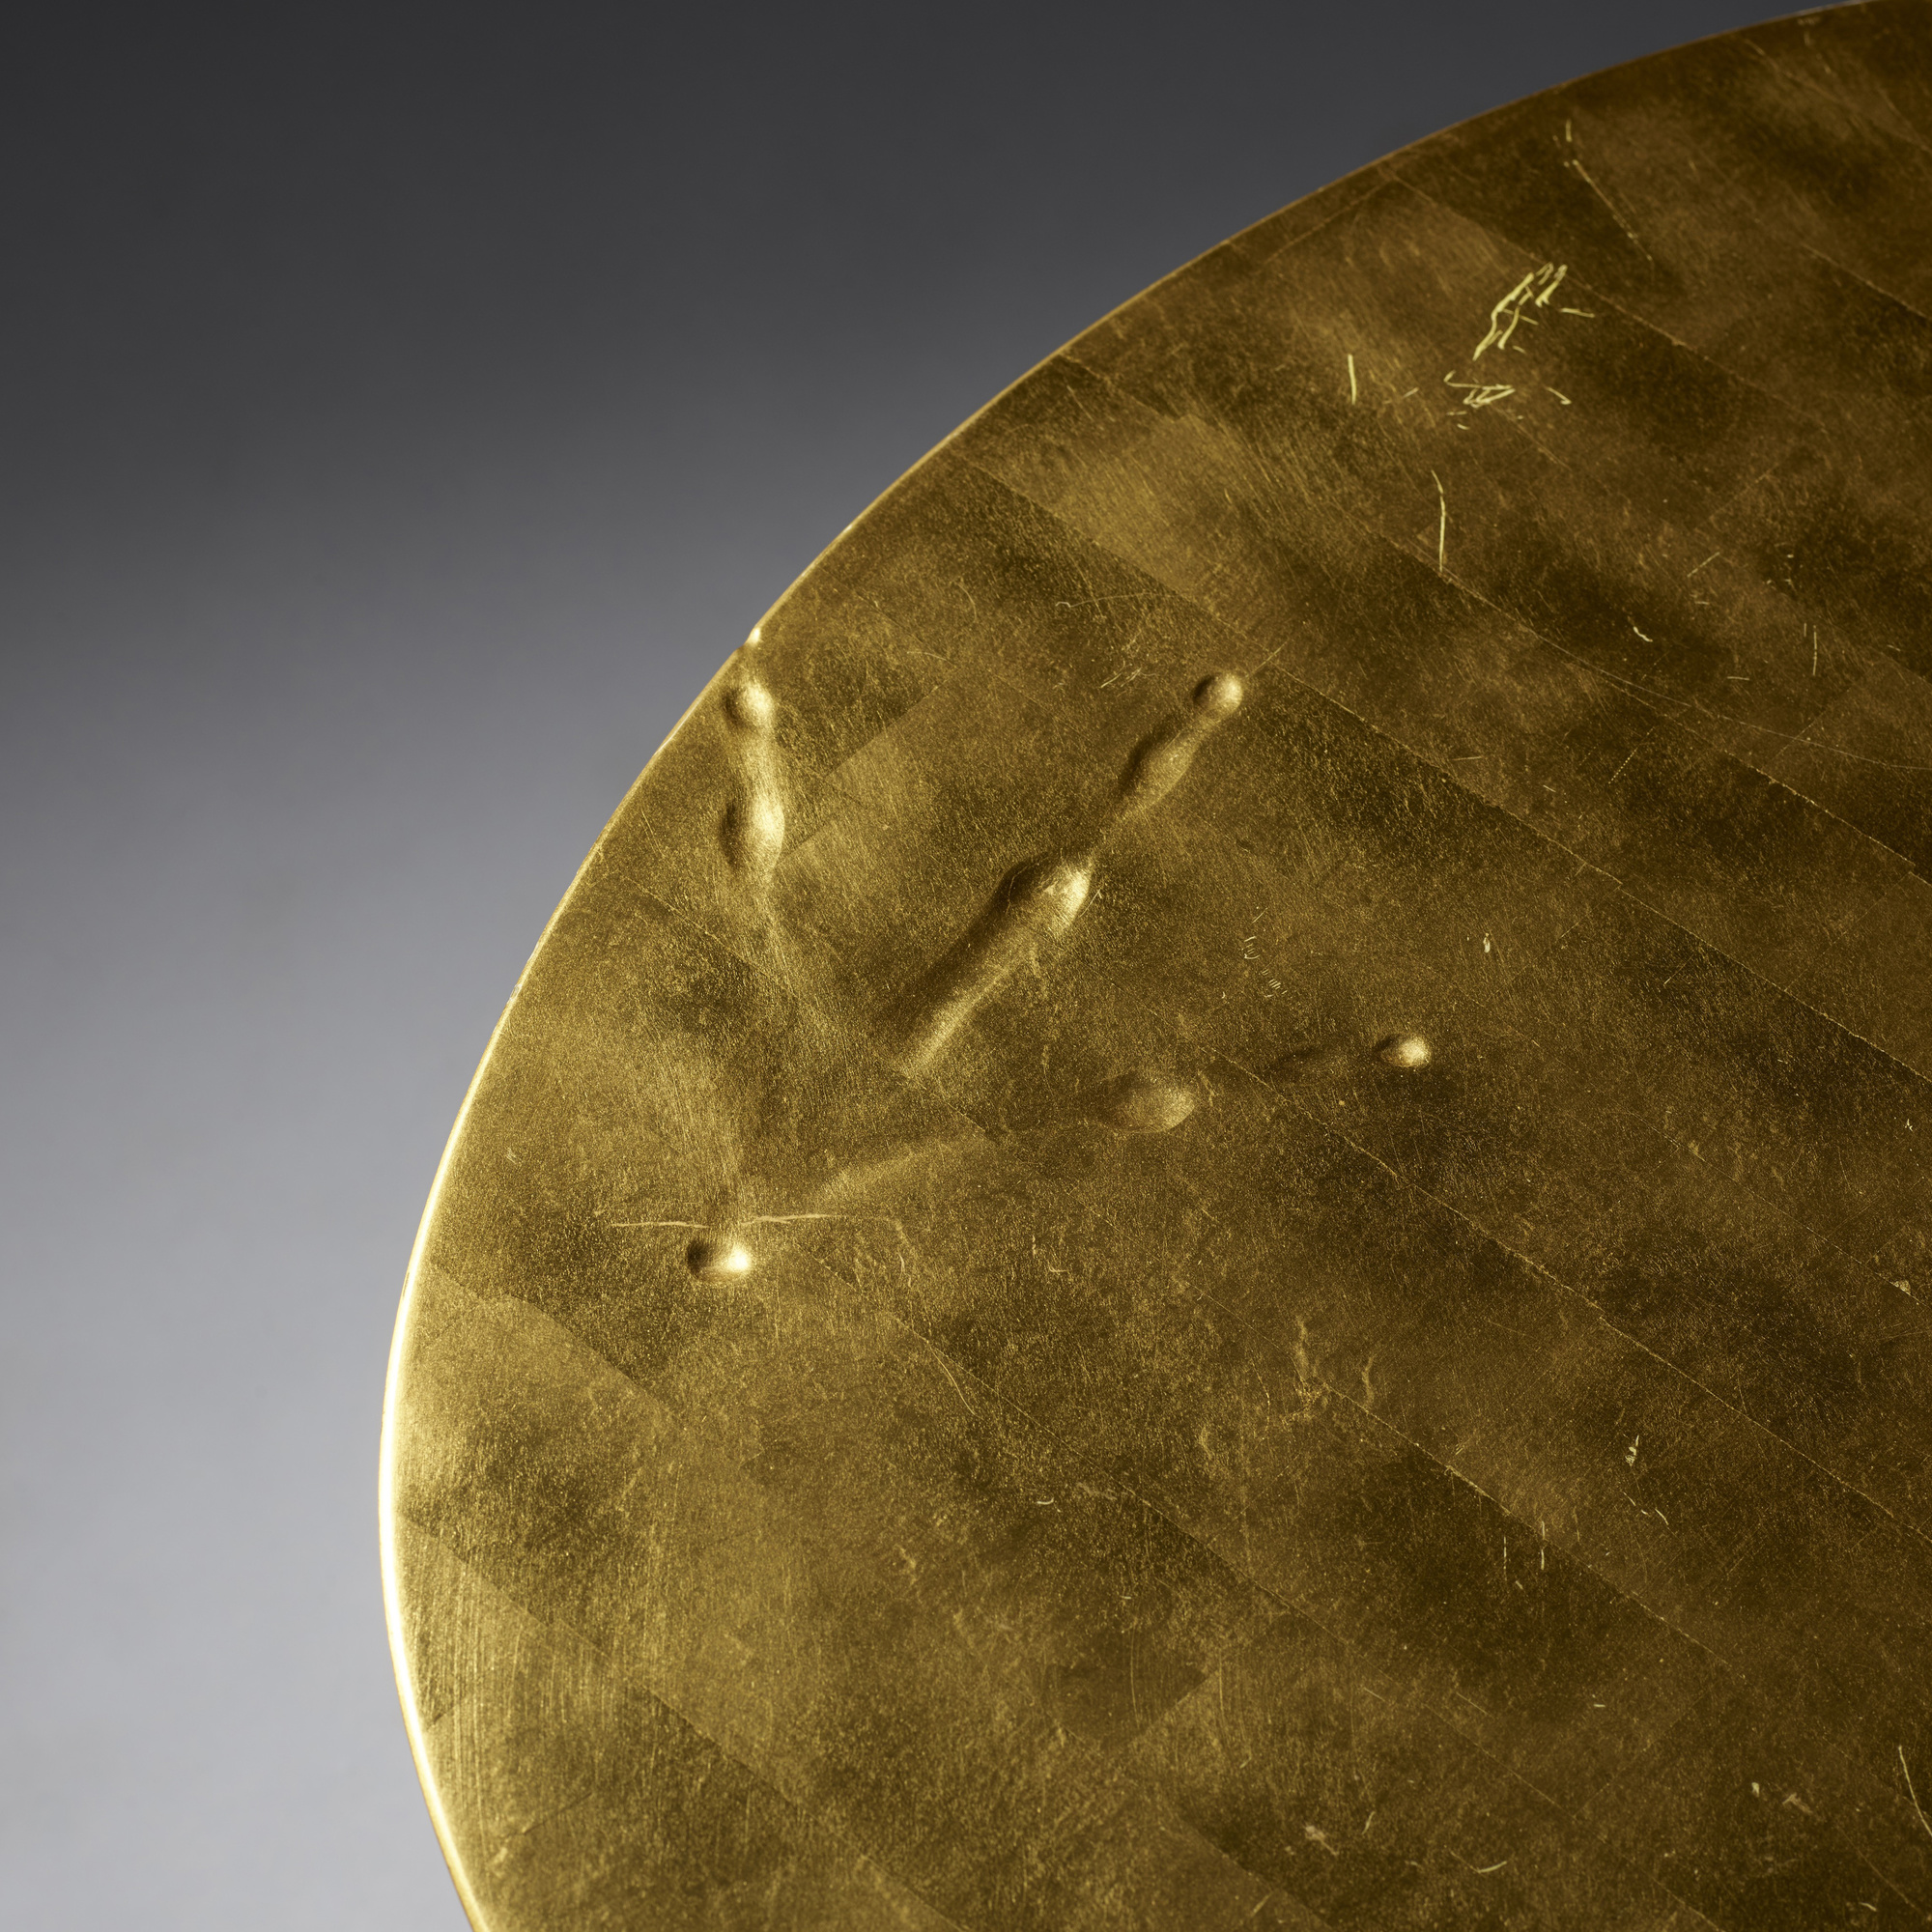 293: Meret Oppenheim / Traccia table from the Ultramobile collection (2 of 3)